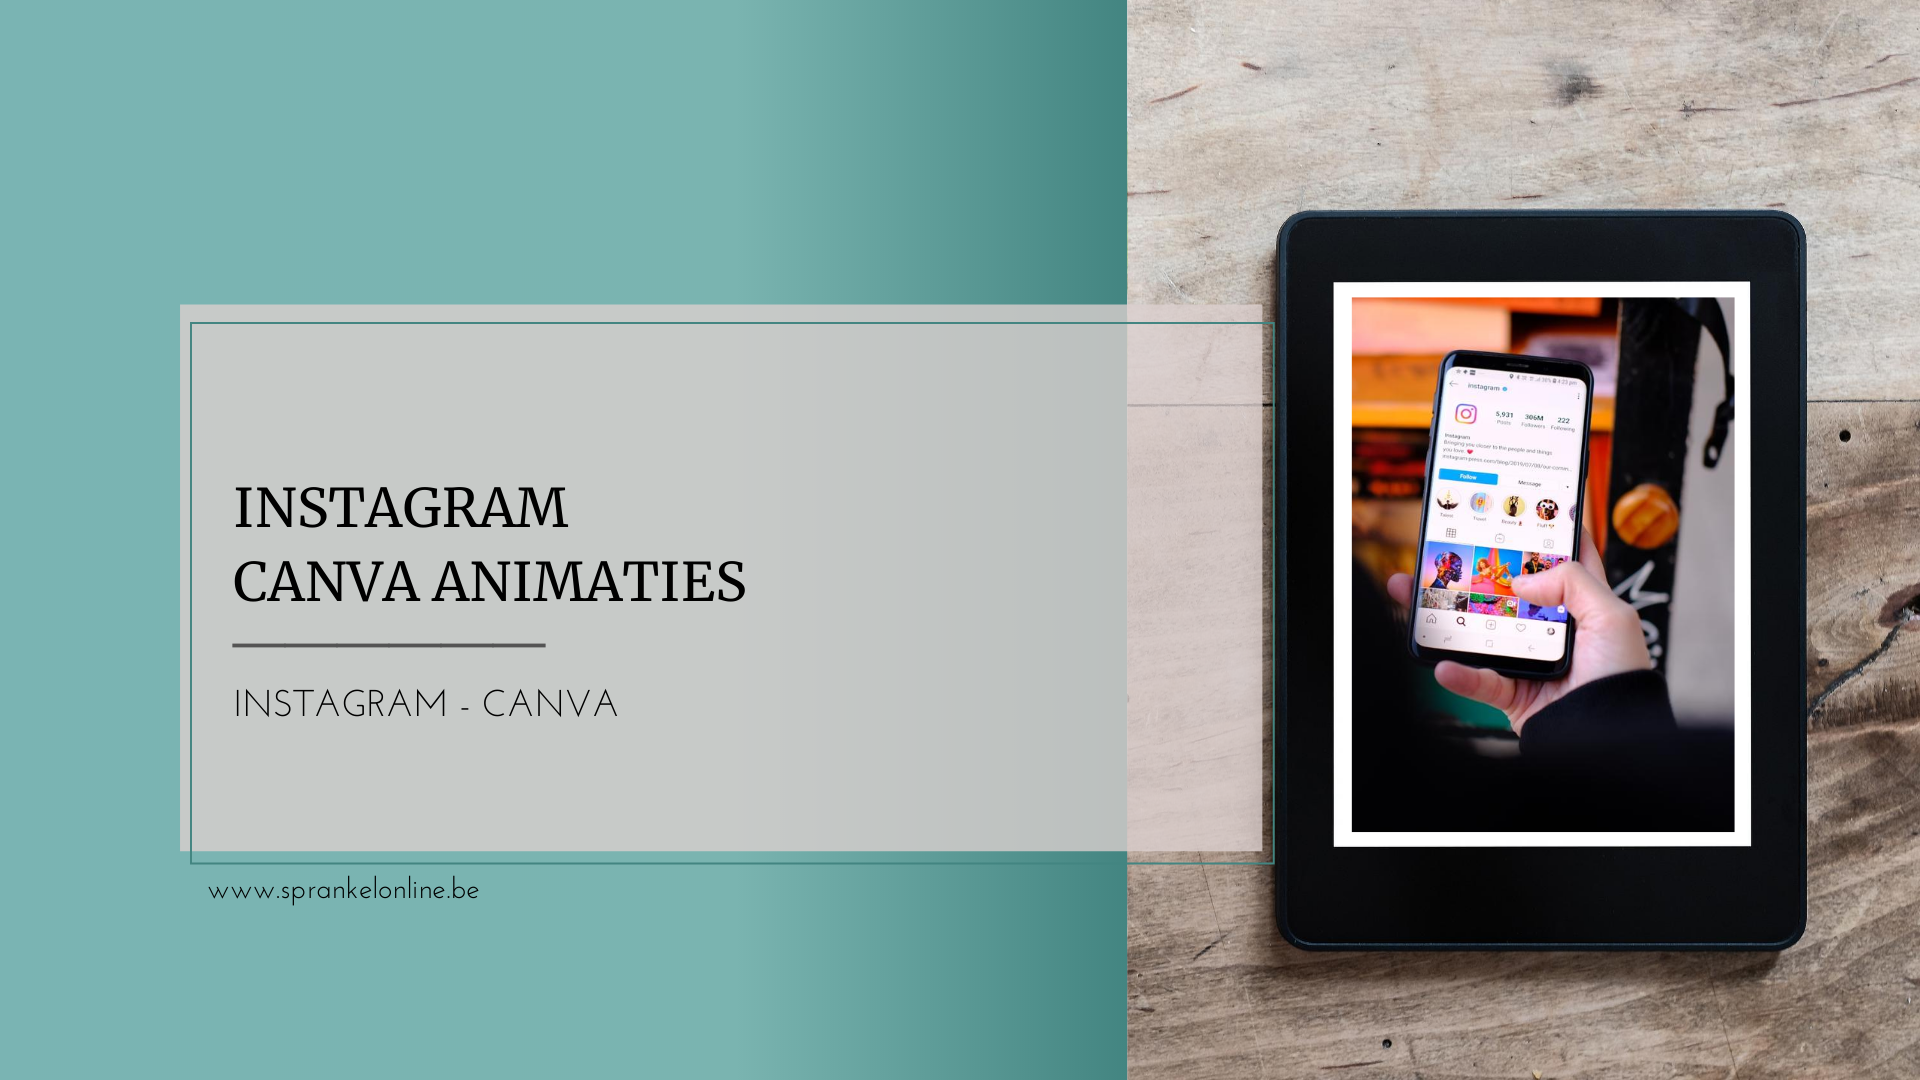 Instagram Canva Animaties